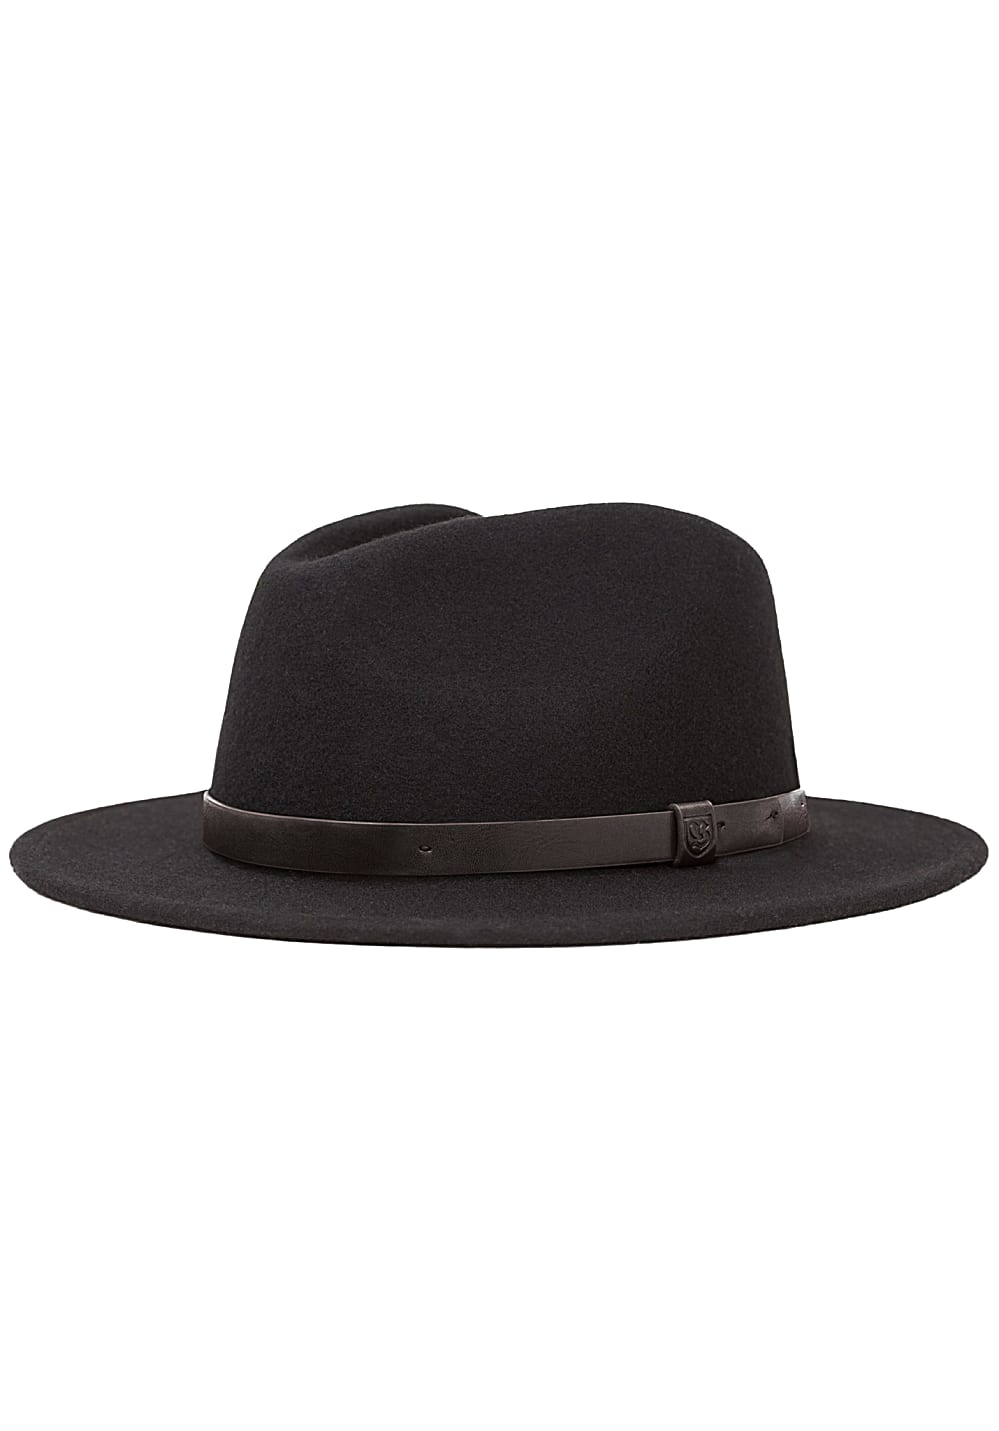 Brixton Messer Fedora Hut Schwarz Planet Sports